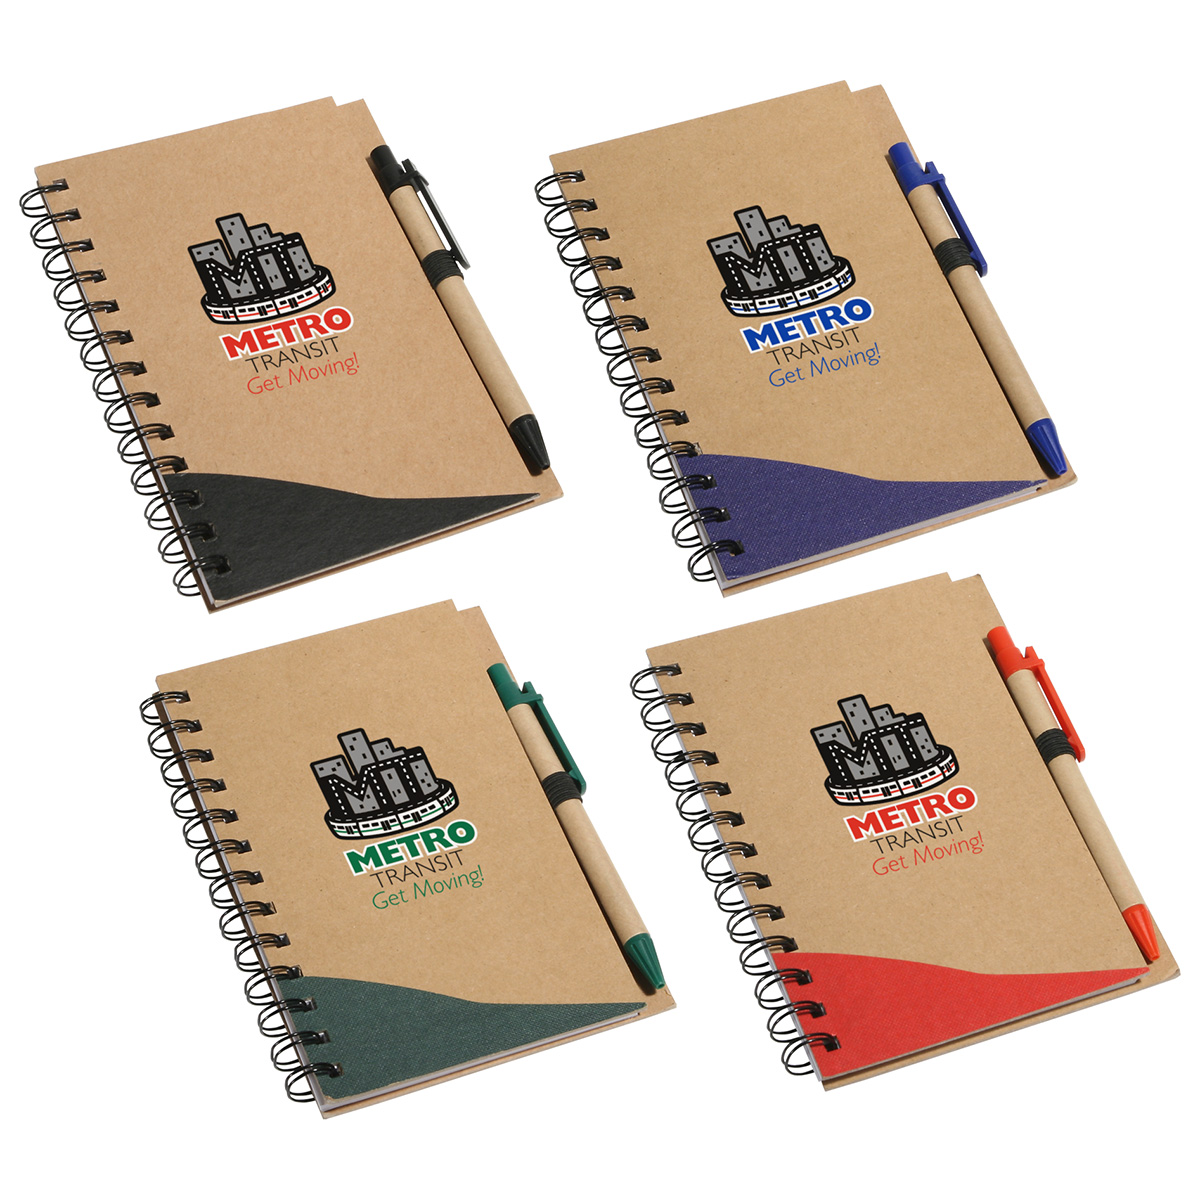 Recycle Write Notebook & Pen, WOF-RW10 - 1 Colour Imprint